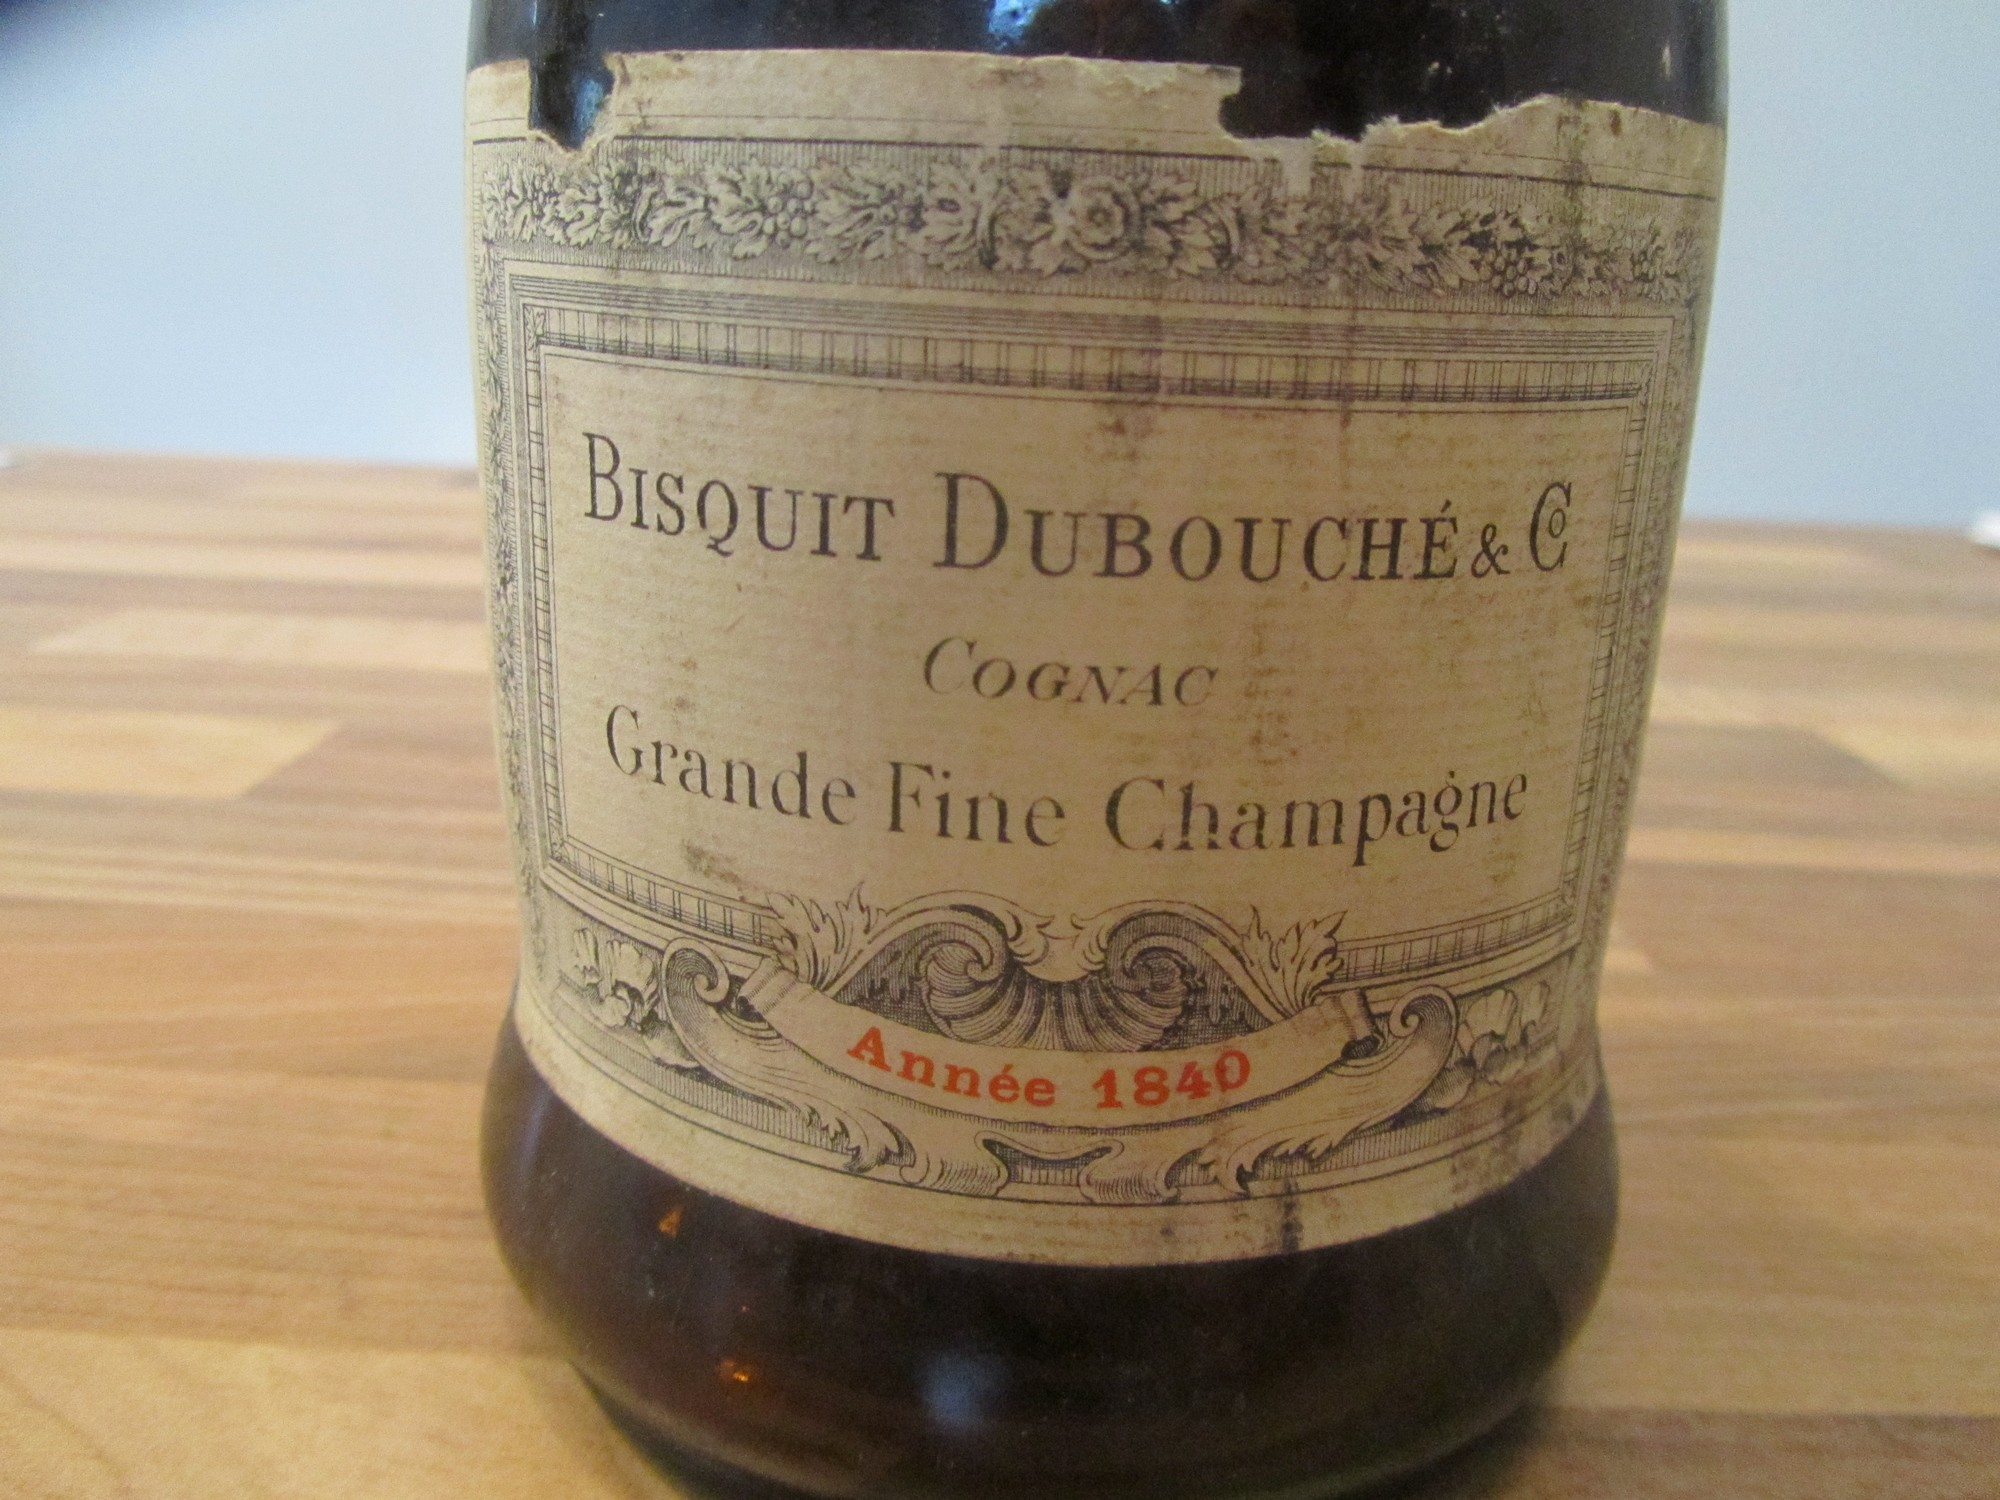 Old Bottle Grande Fine Champagne Bisquit Dubouché & Cie Year 1840